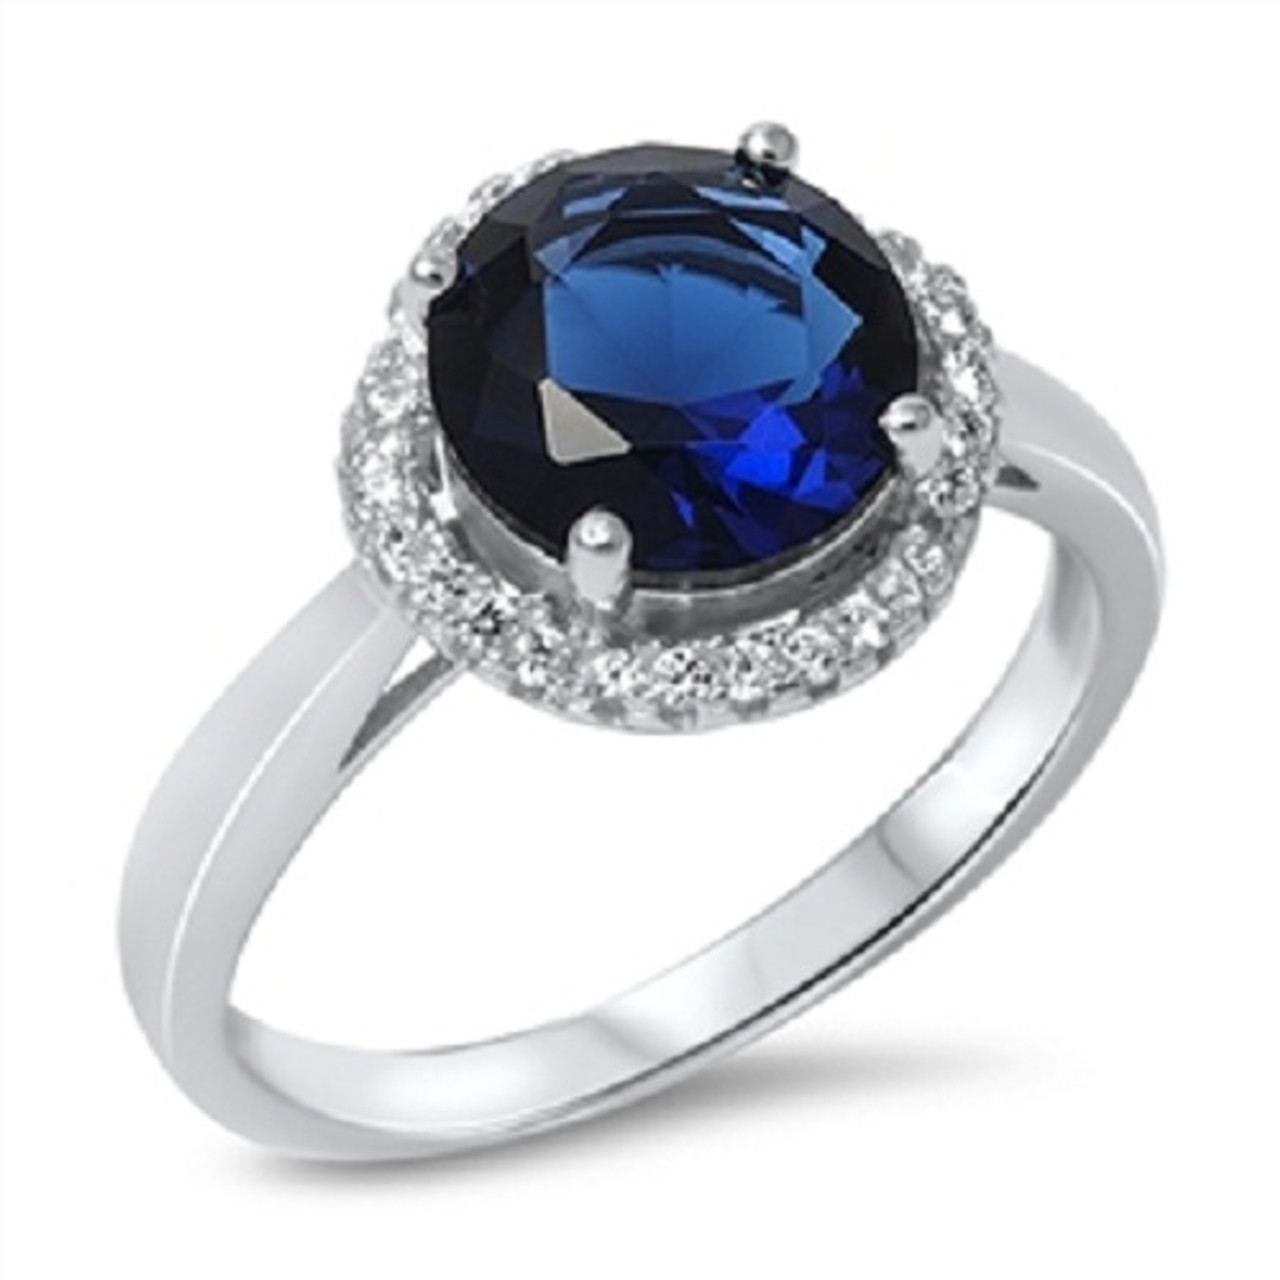 Size 6 Deep Blue Sapphire And Cubic Zirconia Sterling Silver Ring